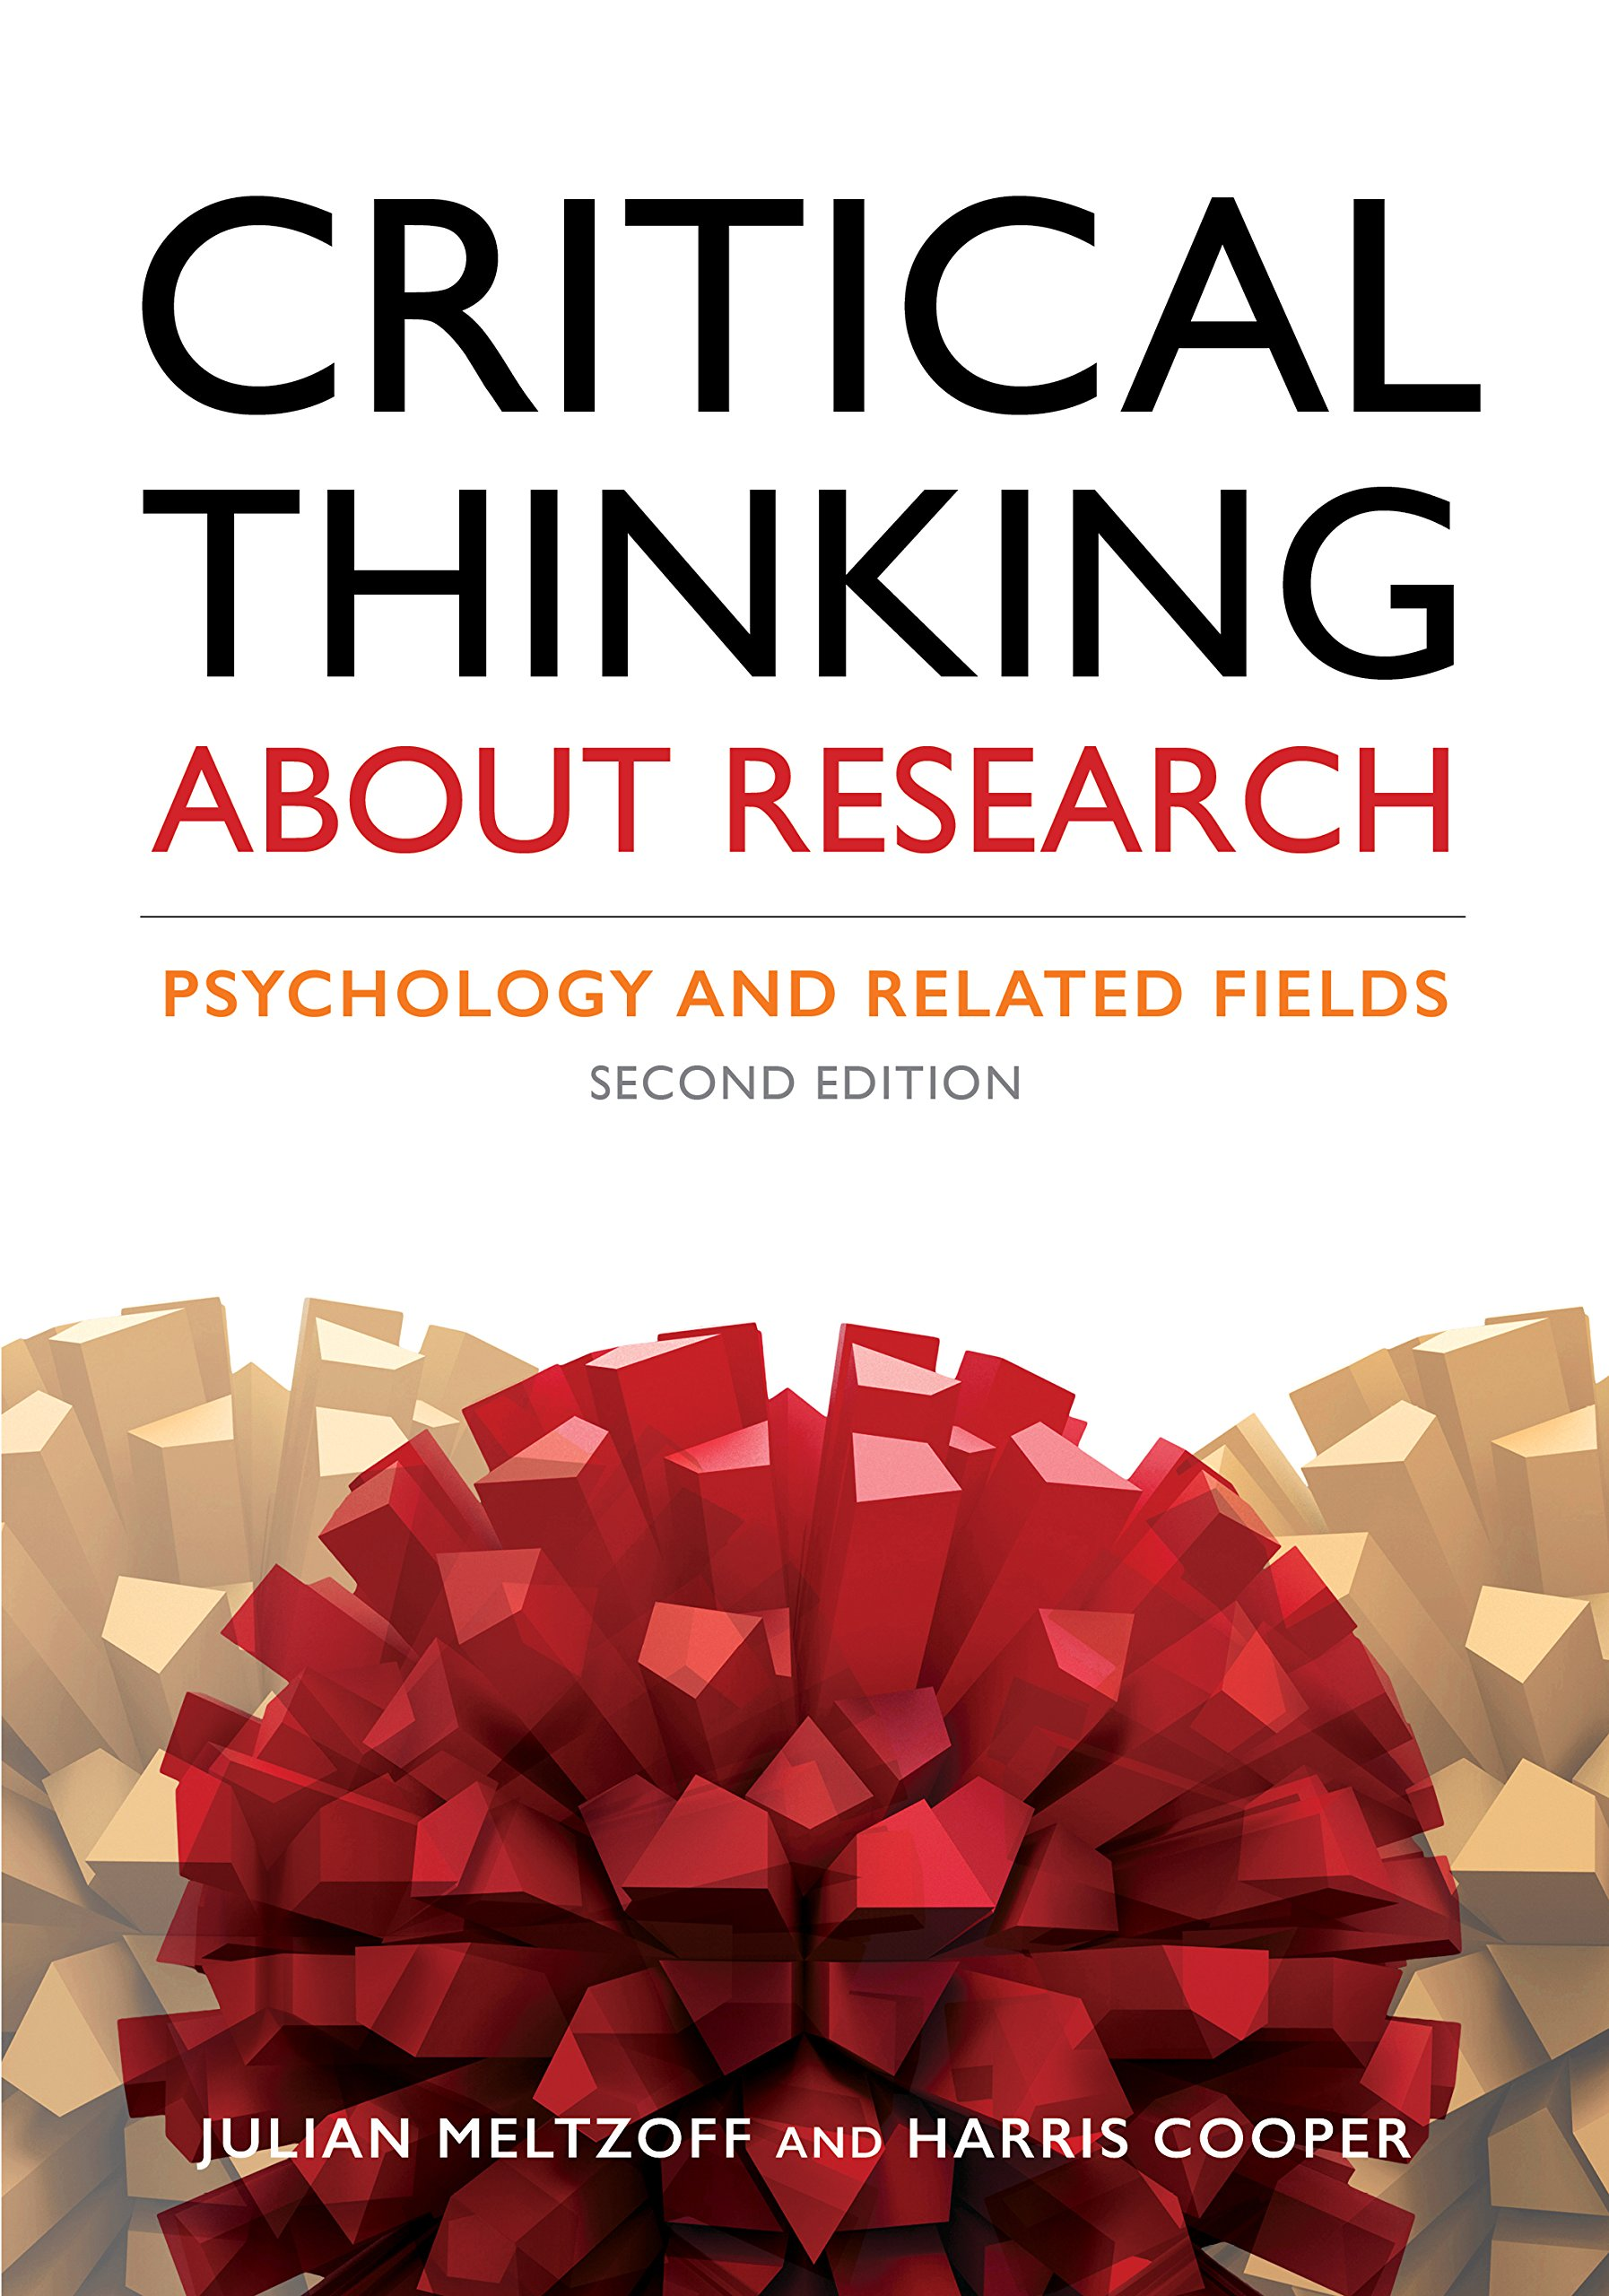 Critical Thinking About Research: Psychology and Related Fields: Dr. Harris  M. Cooper PhD, Julian Meltzoff PhD: 9781433827105: Amazon.com: Books